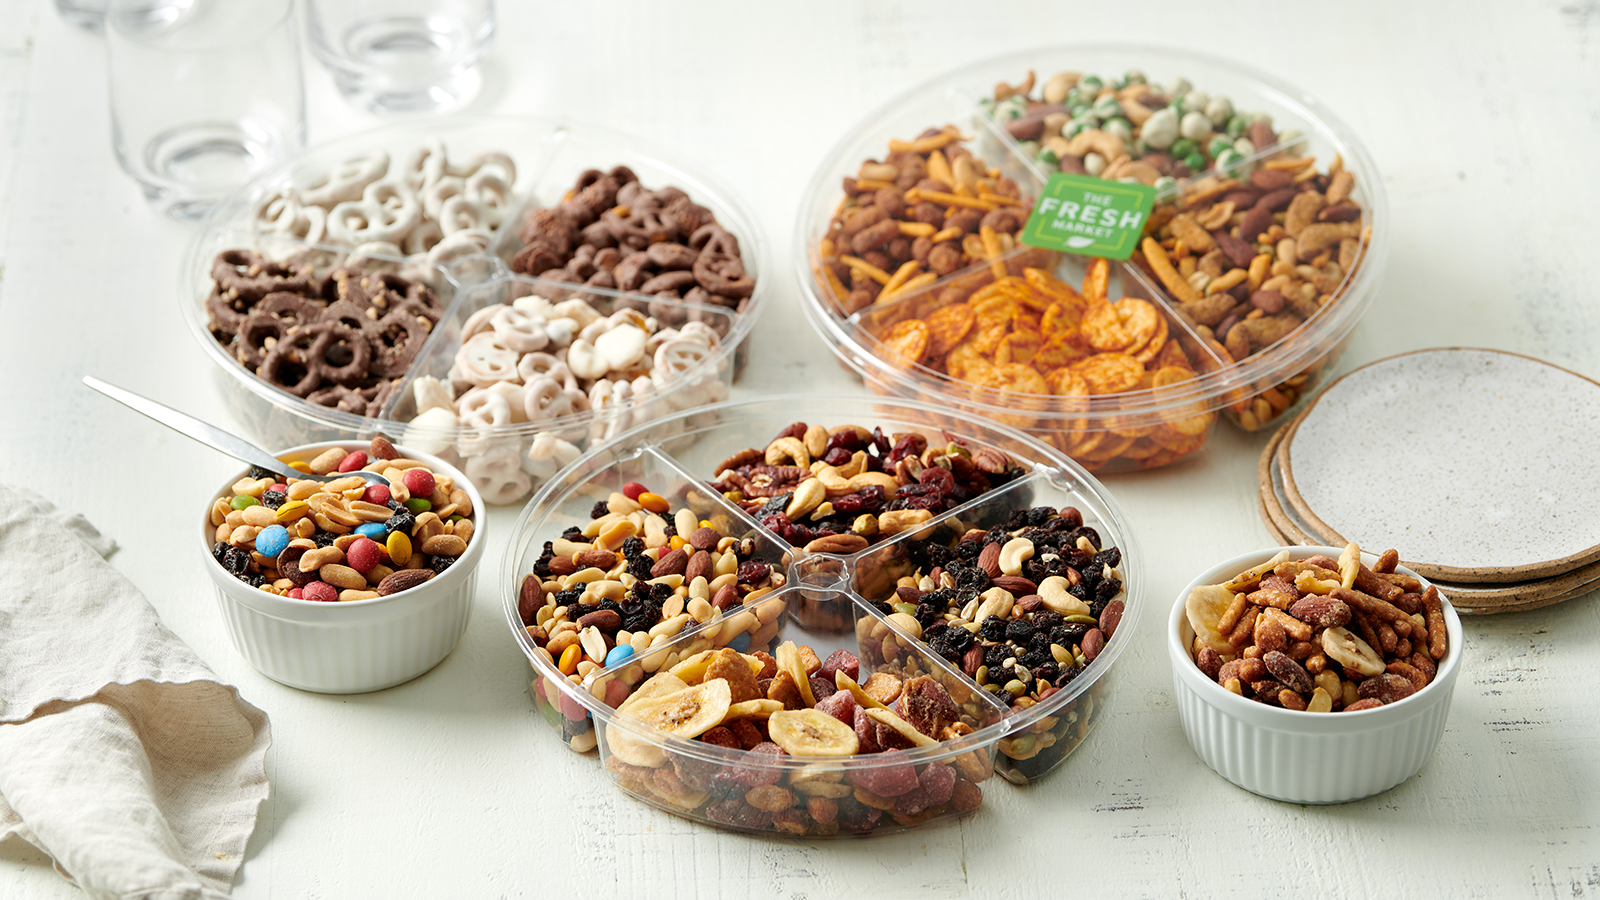 Bulk snack trays